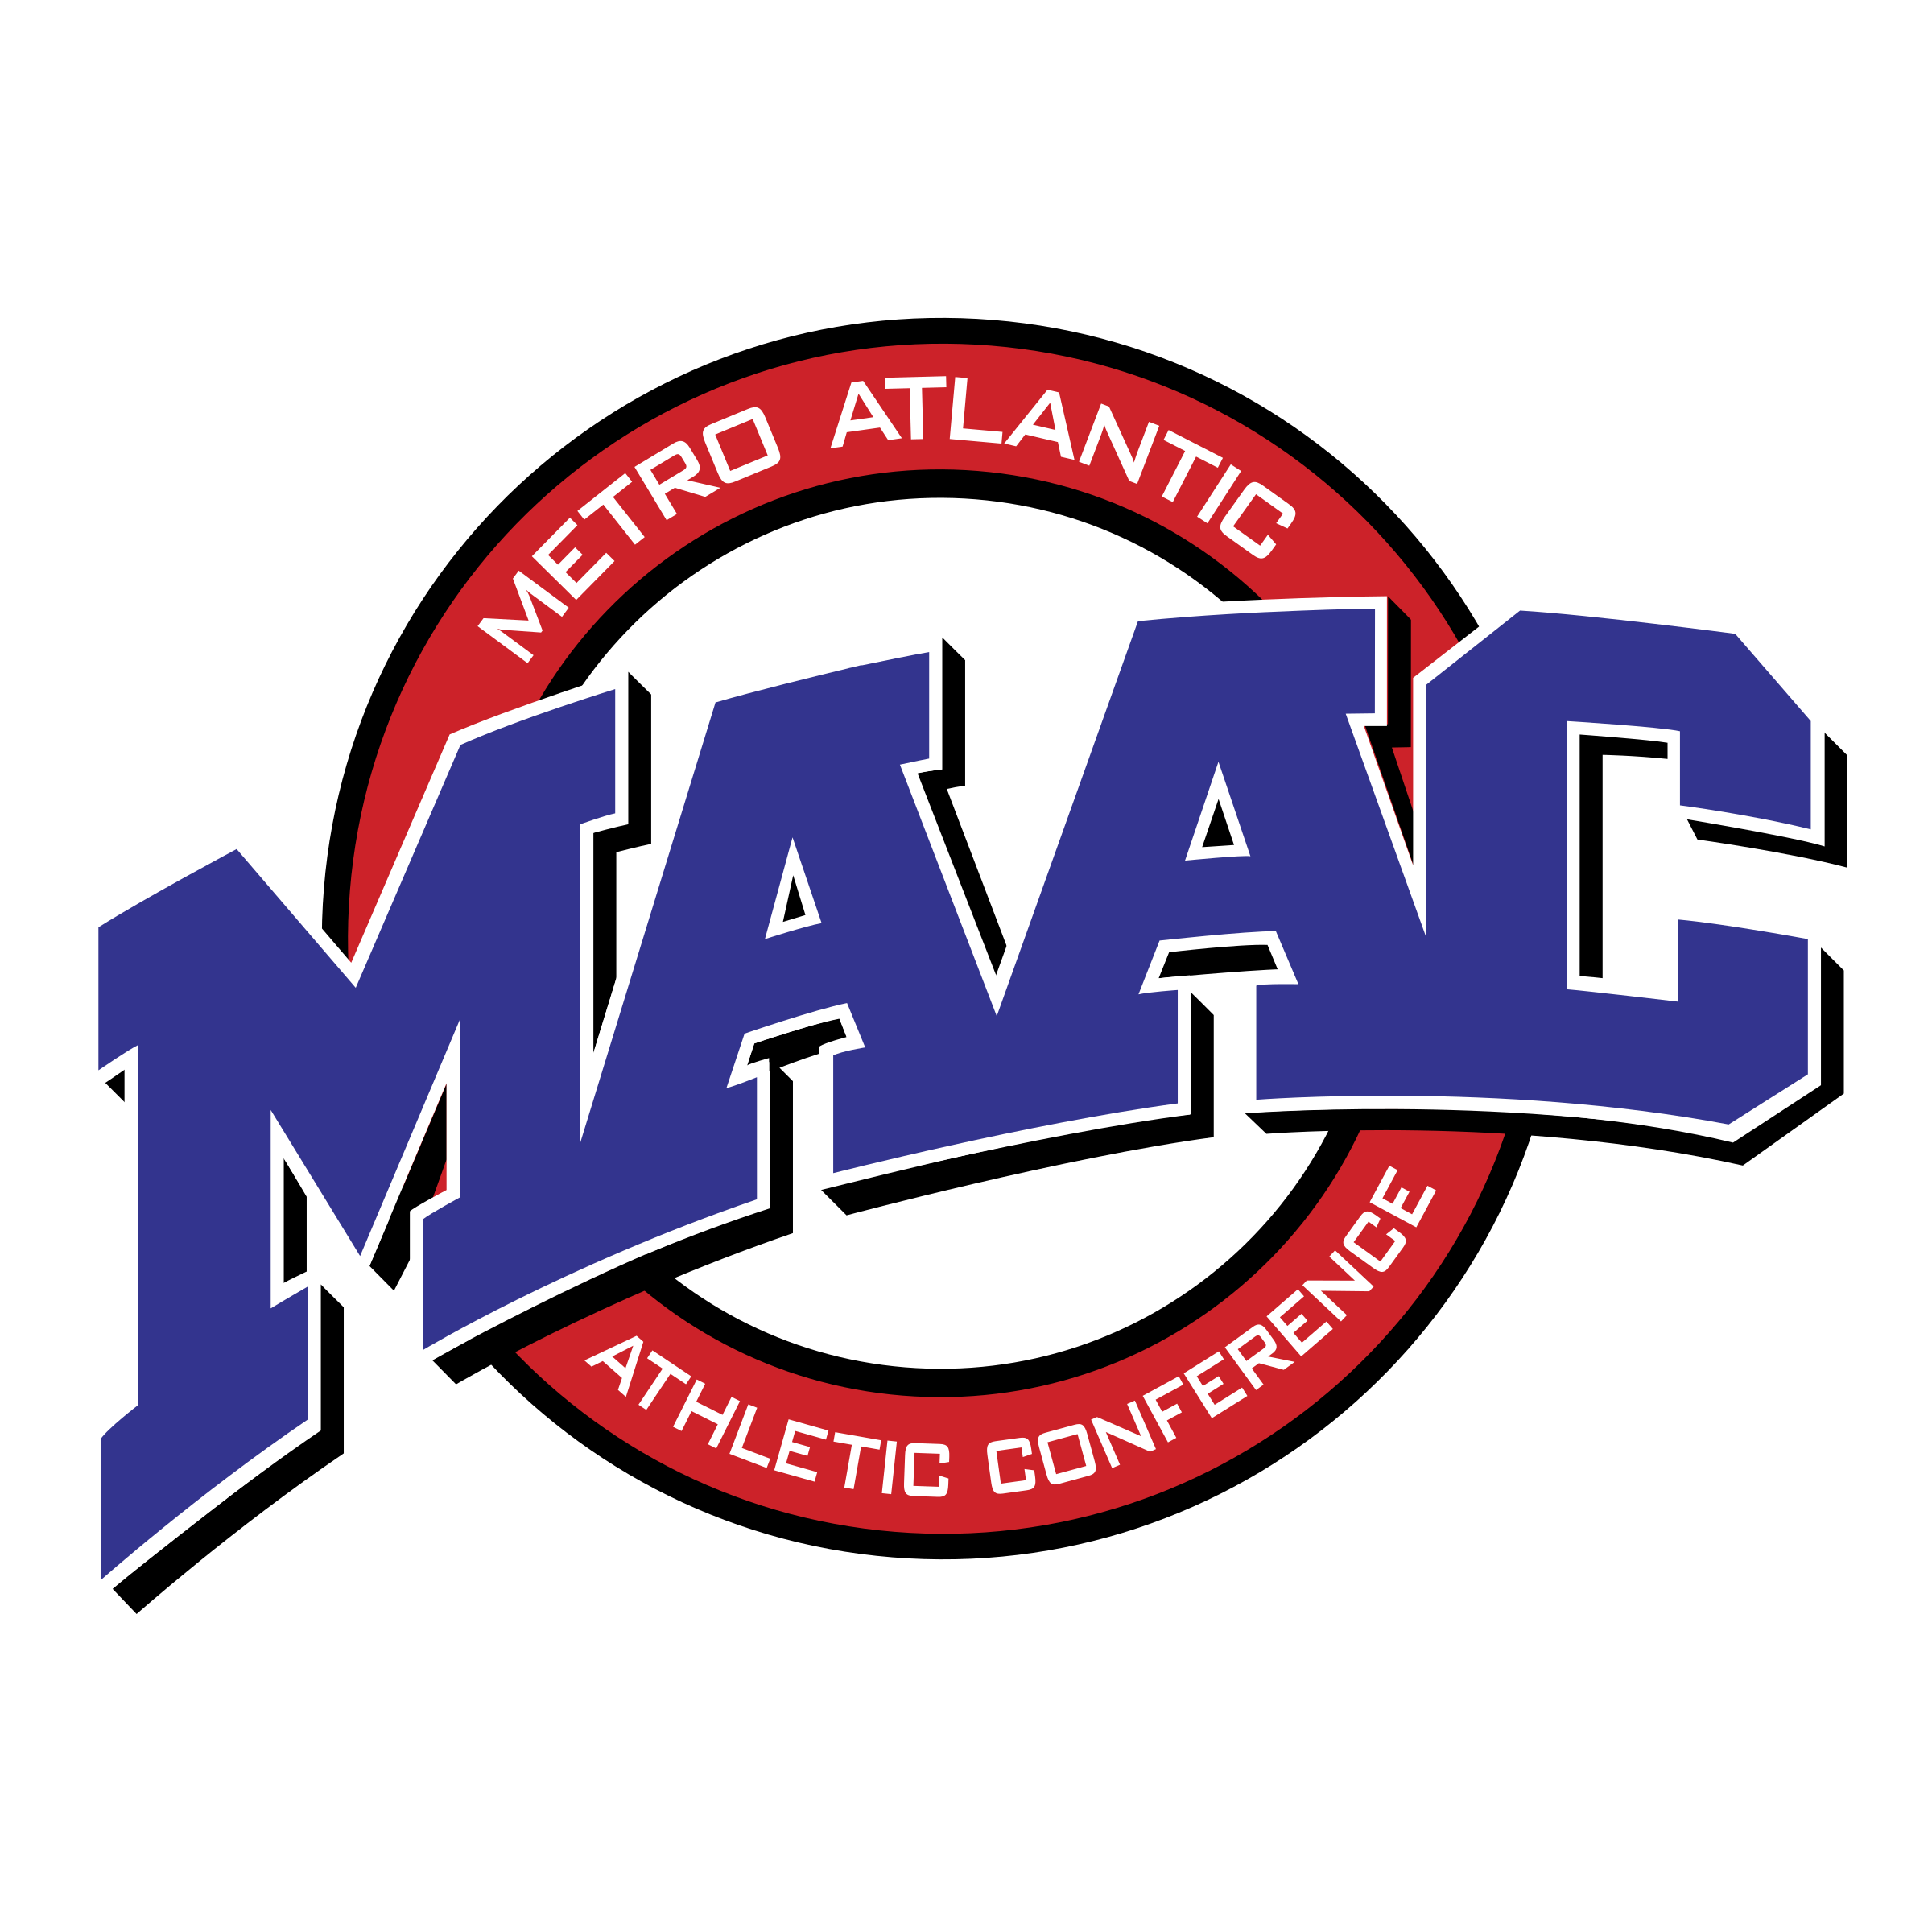 Maac logo clipart banner free library MAAC Logo PNG Transparent & SVG Vector - Freebie Supply banner free library